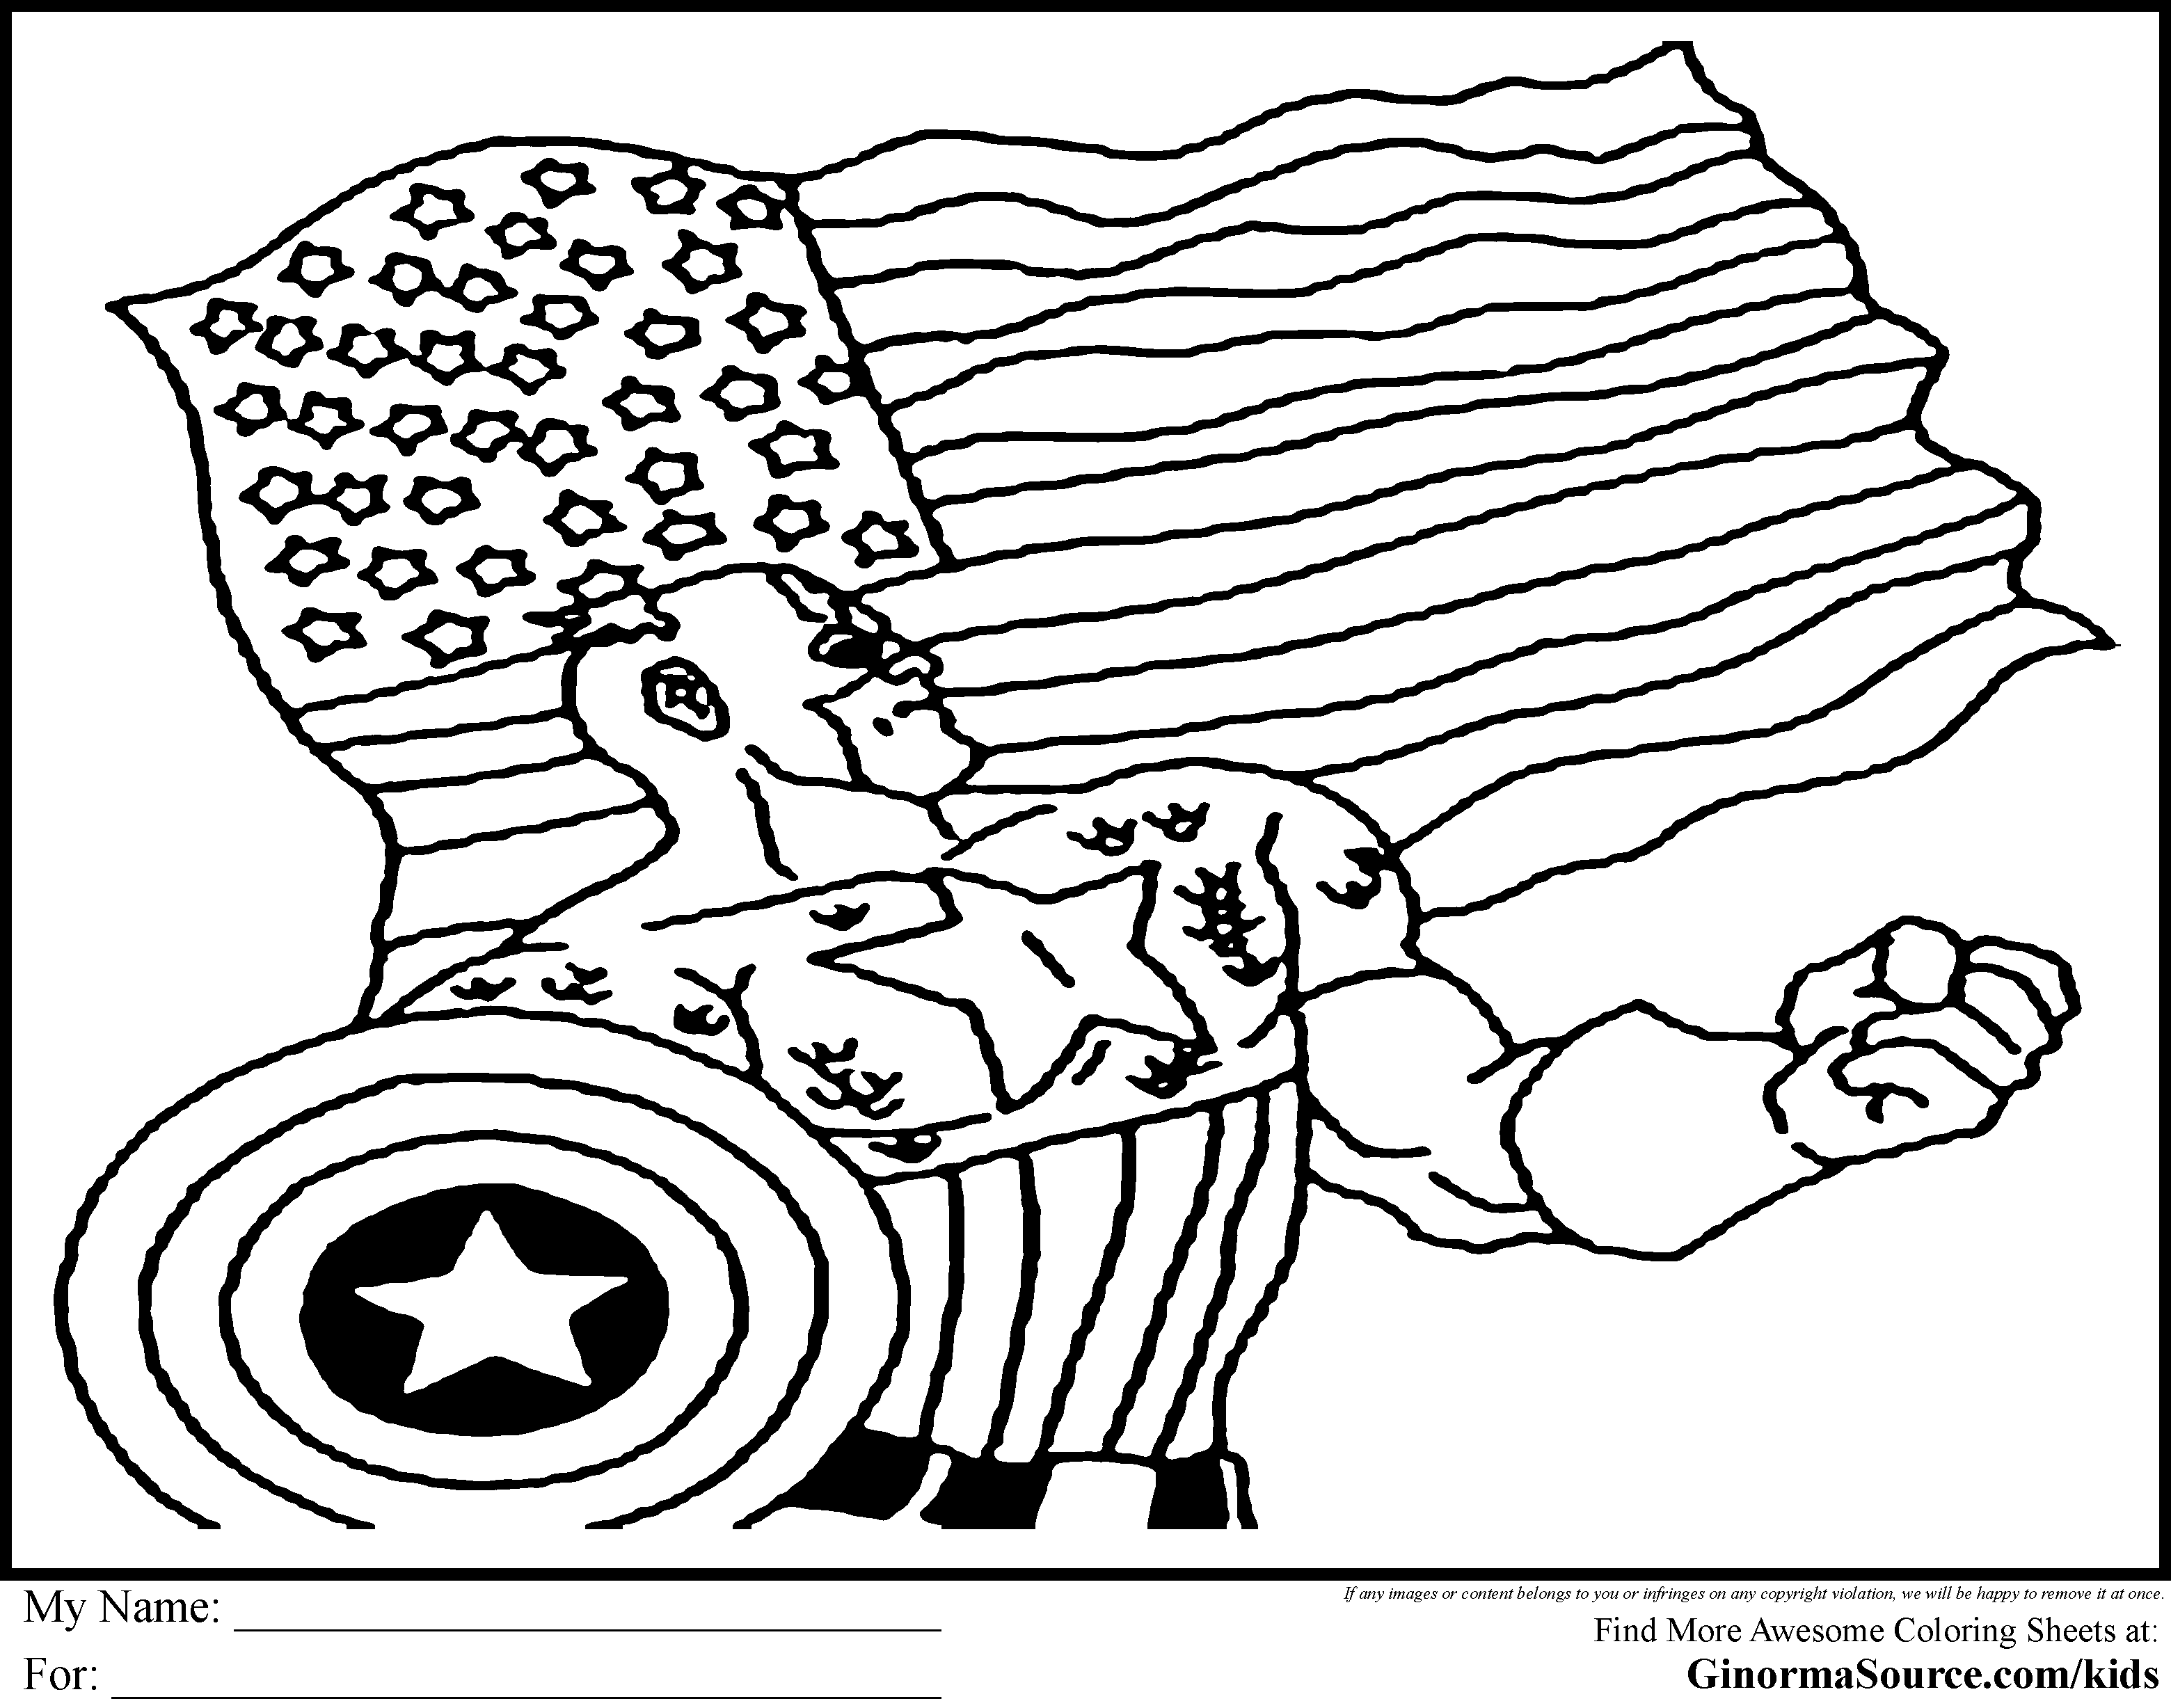 avengers coloring pages captain america - photo#22